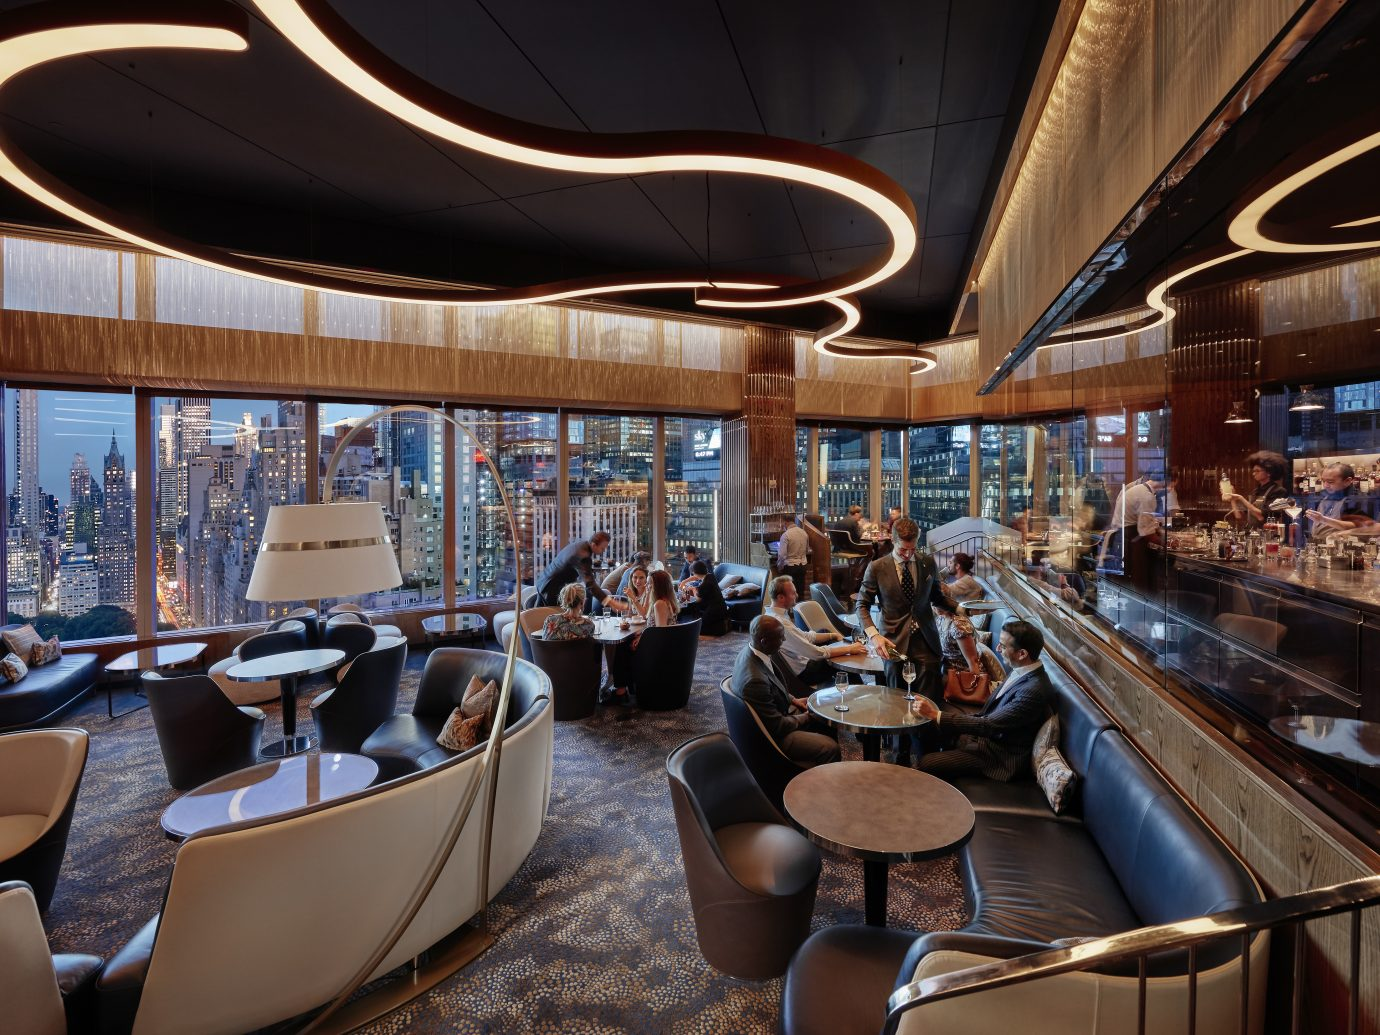 great lounge area with beautiful curvy ceiling lights and tables